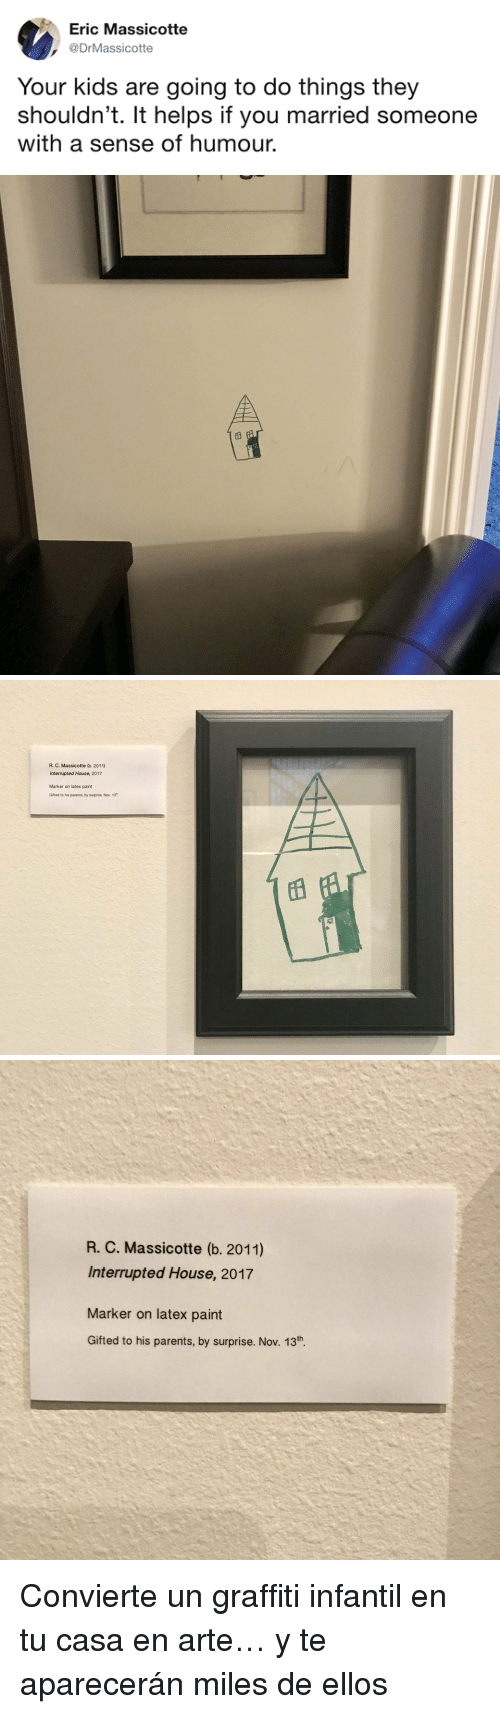 Graffiti, Parents, and House: Eric Massicotte  DrMassicotte  Your kids are going to do things they  shouldn't. It helps if you married someone  with a sense of humour.   R. C. Massicotte (b. 2011)  Interrupted House, 2017  Marker on latex paint  Gifted to his parents, by surprise. Nov. 13   R. C. Massicotte (b. 2011)  Interrupted House, 2017  Marker on latex paint  Gifted to his parents, by surprise. Nov. 13th. <p>Convierte un graffiti infantil en tu casa en arte… y te aparecerán miles de ellos</p>